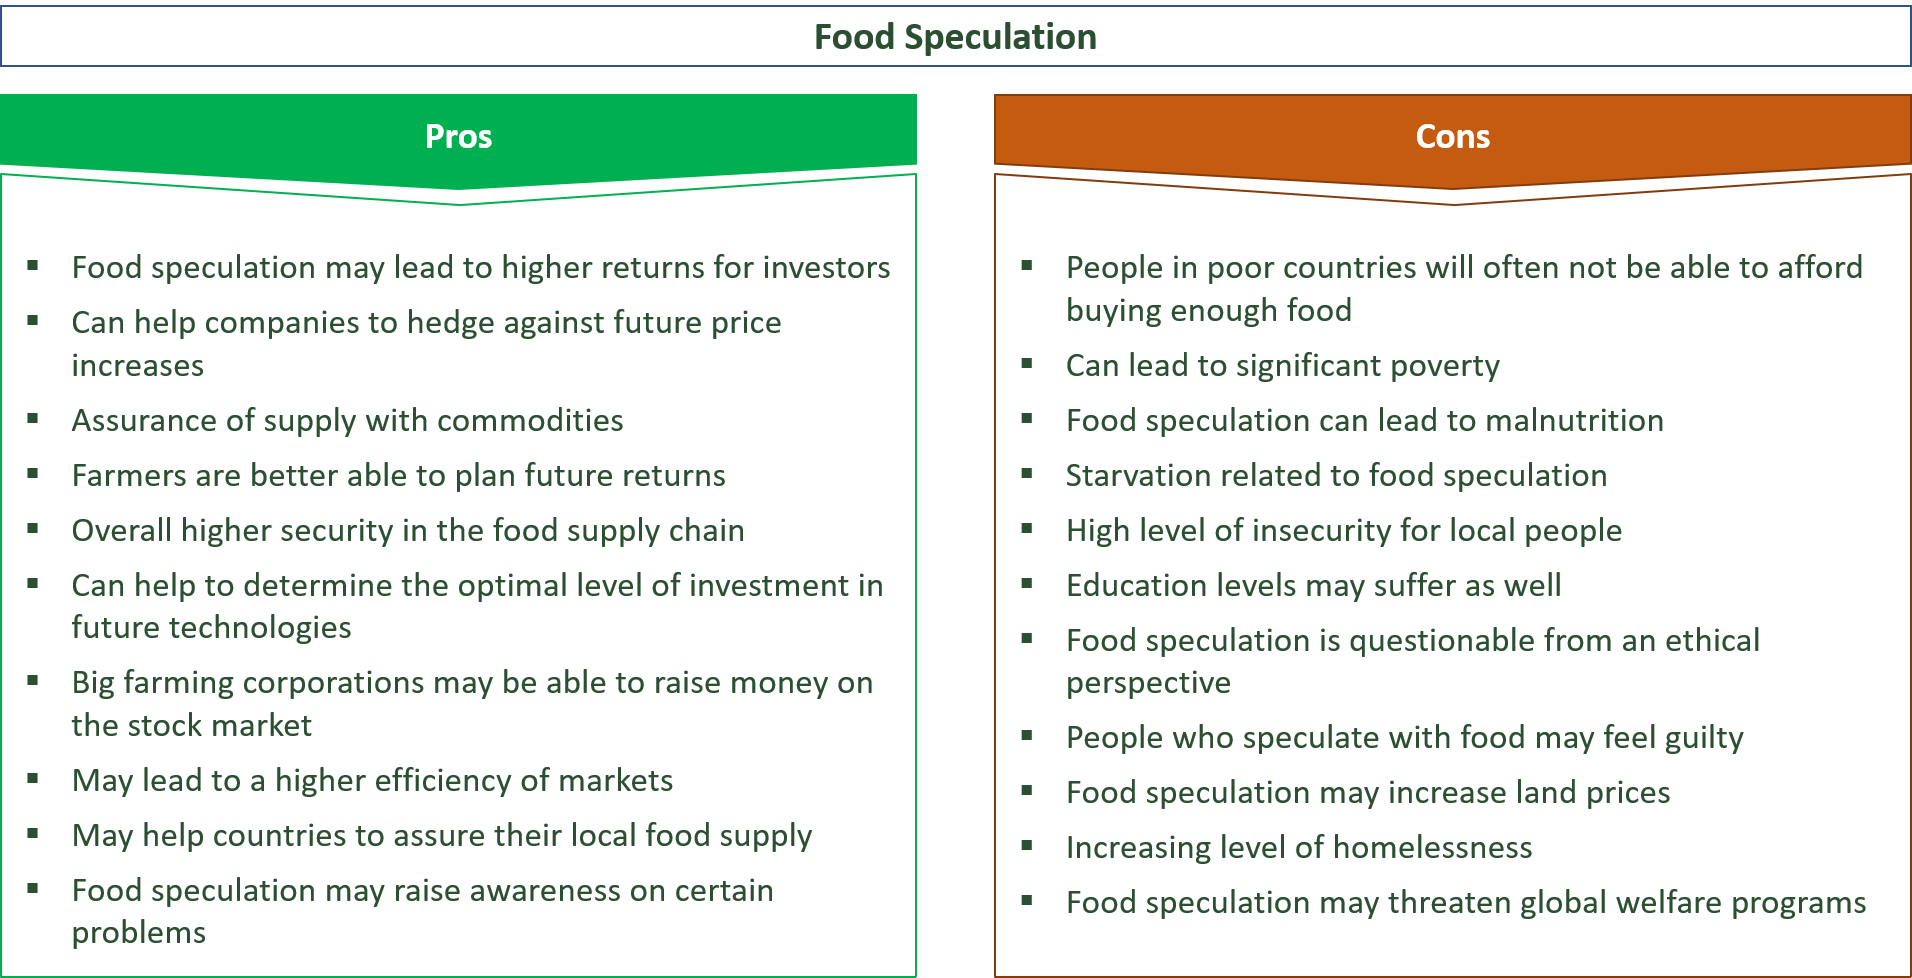 advantages and disadvantages of food speculation